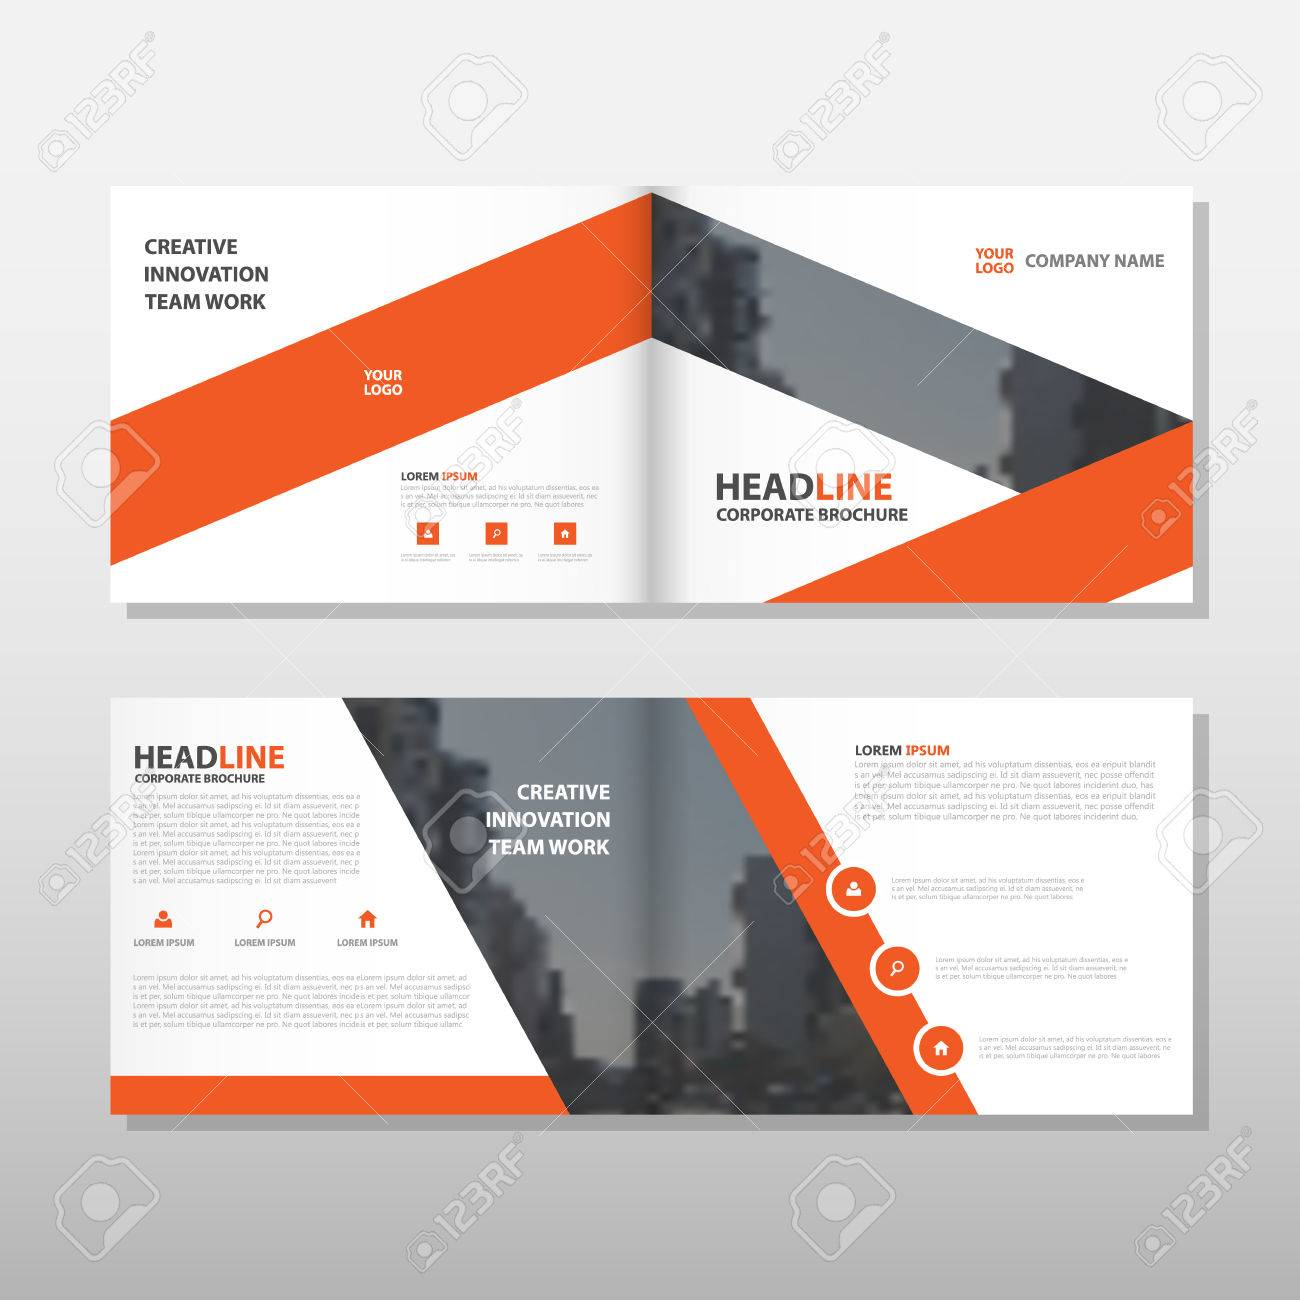 Orange Brochure Leaflet Flyer Annual Report Template Design, Book Cover  Layout Design, Abstract Business  Annual Report Template Design